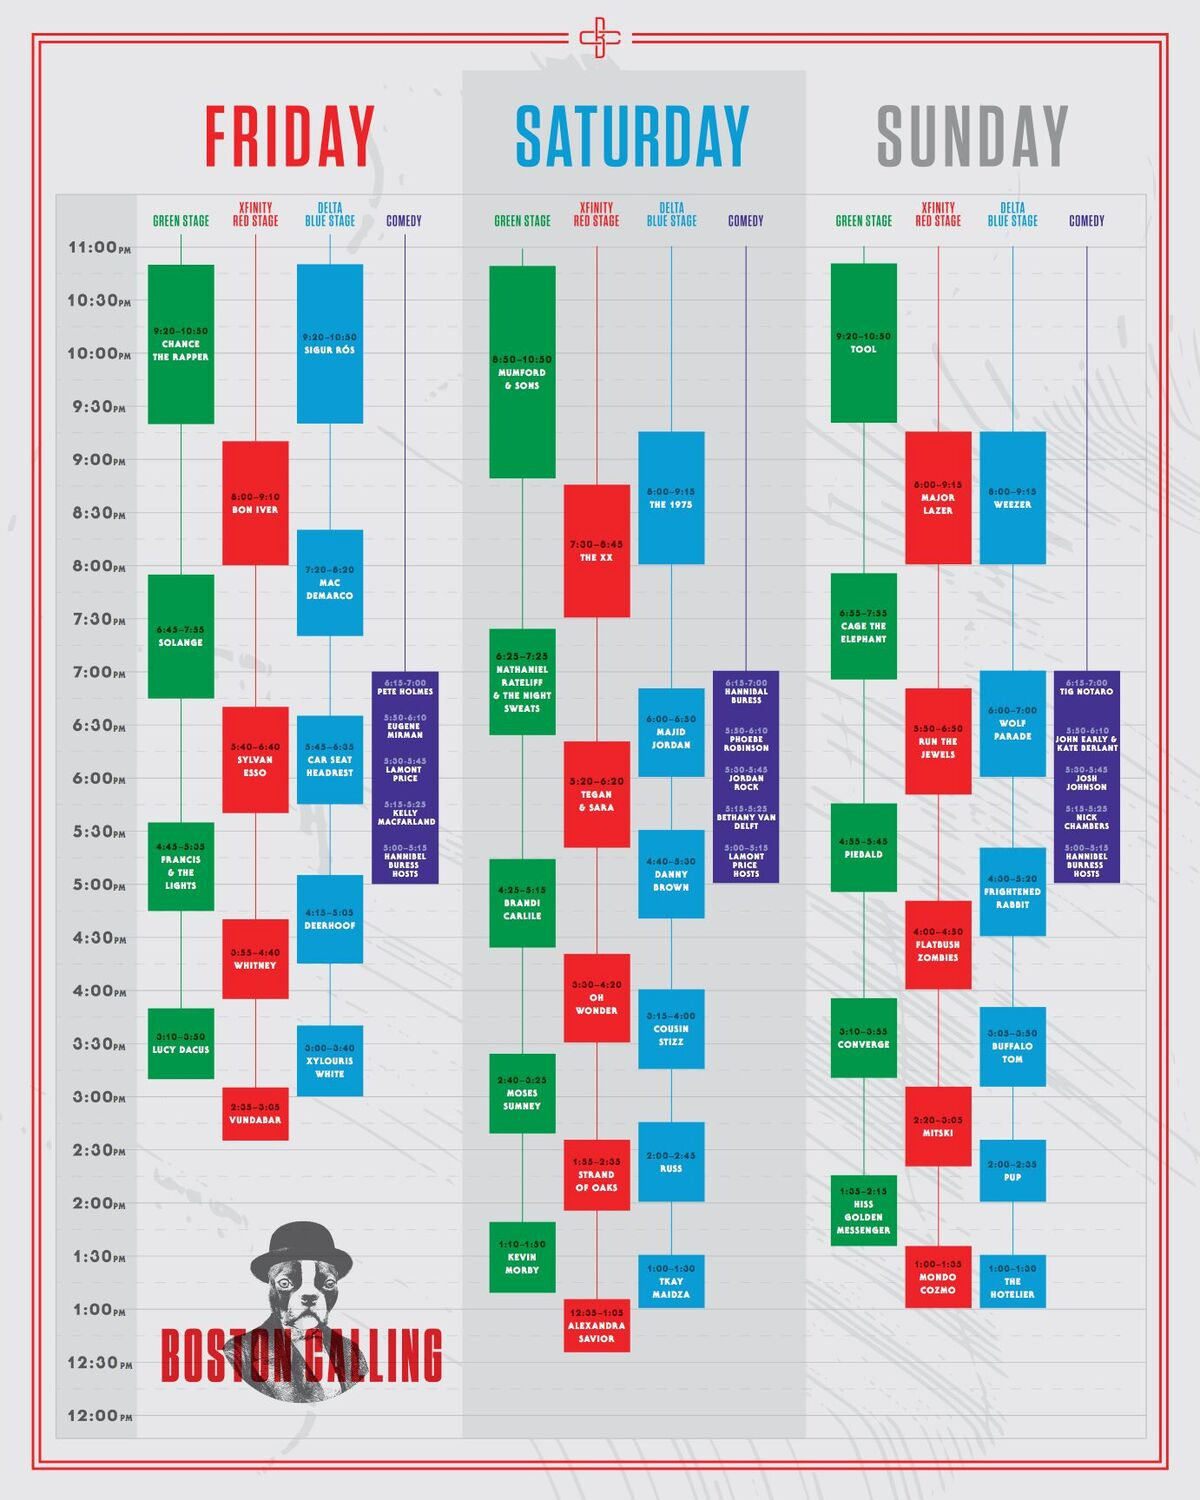 Day by day schedule for performances